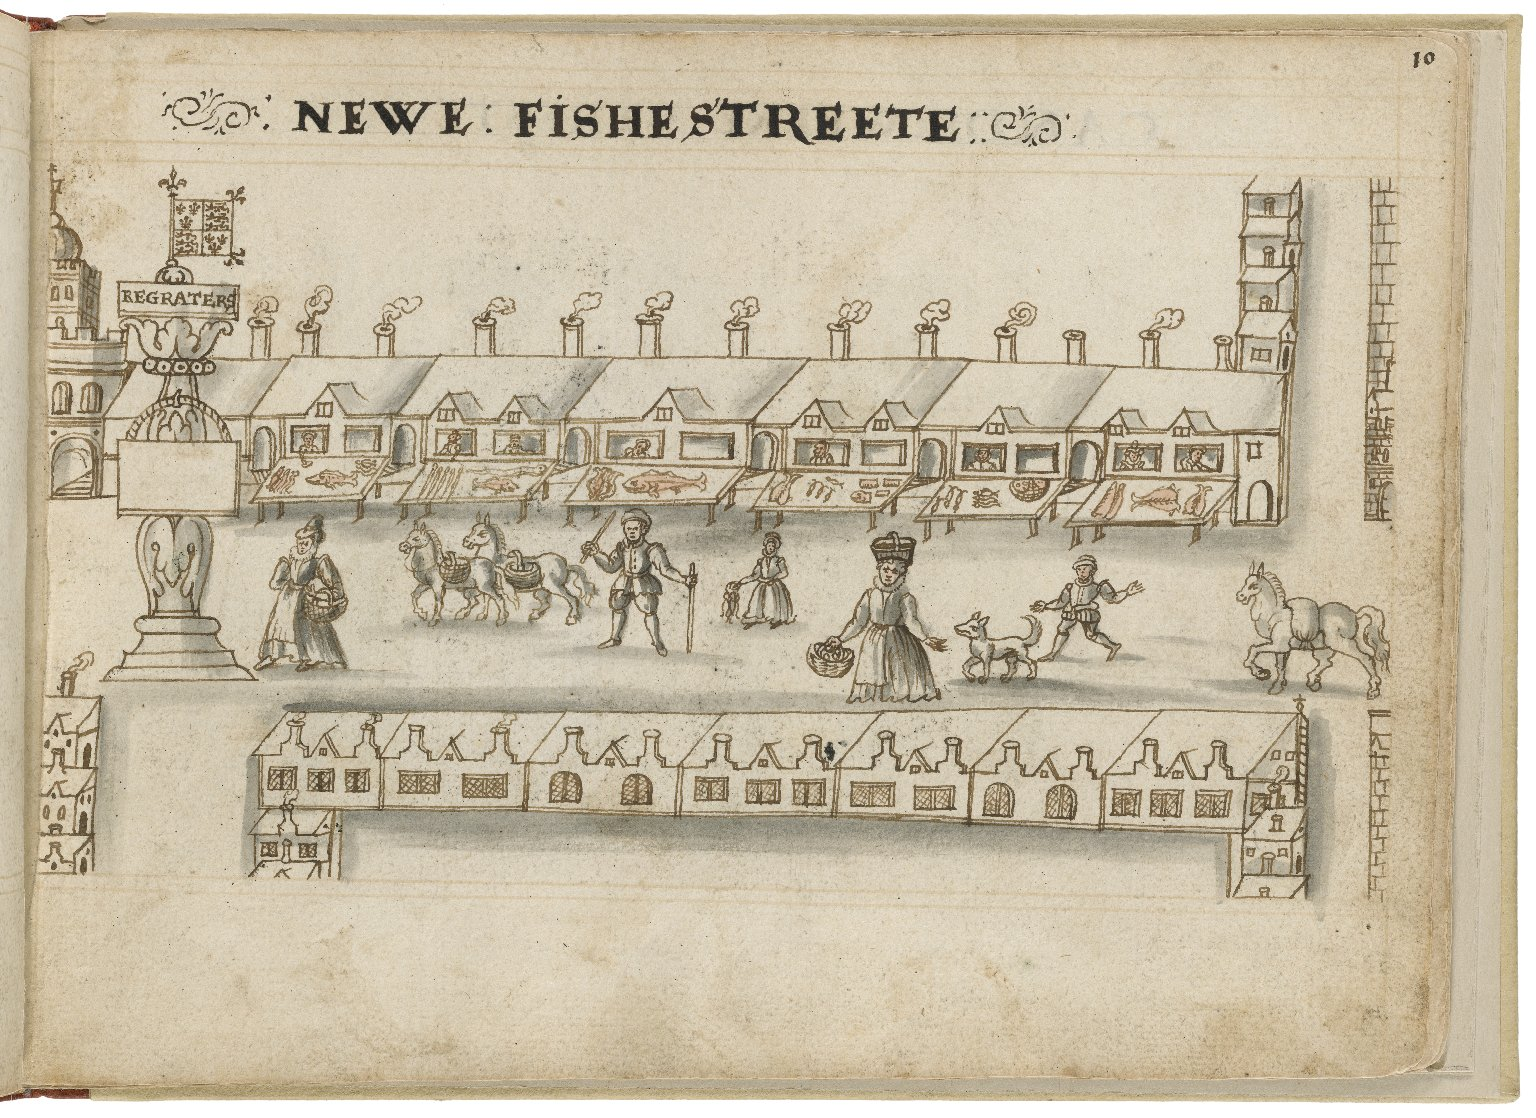 Drawing of New Fish Street by Hugh Alley. Image courtesy of the Folger Digital Image Collection.